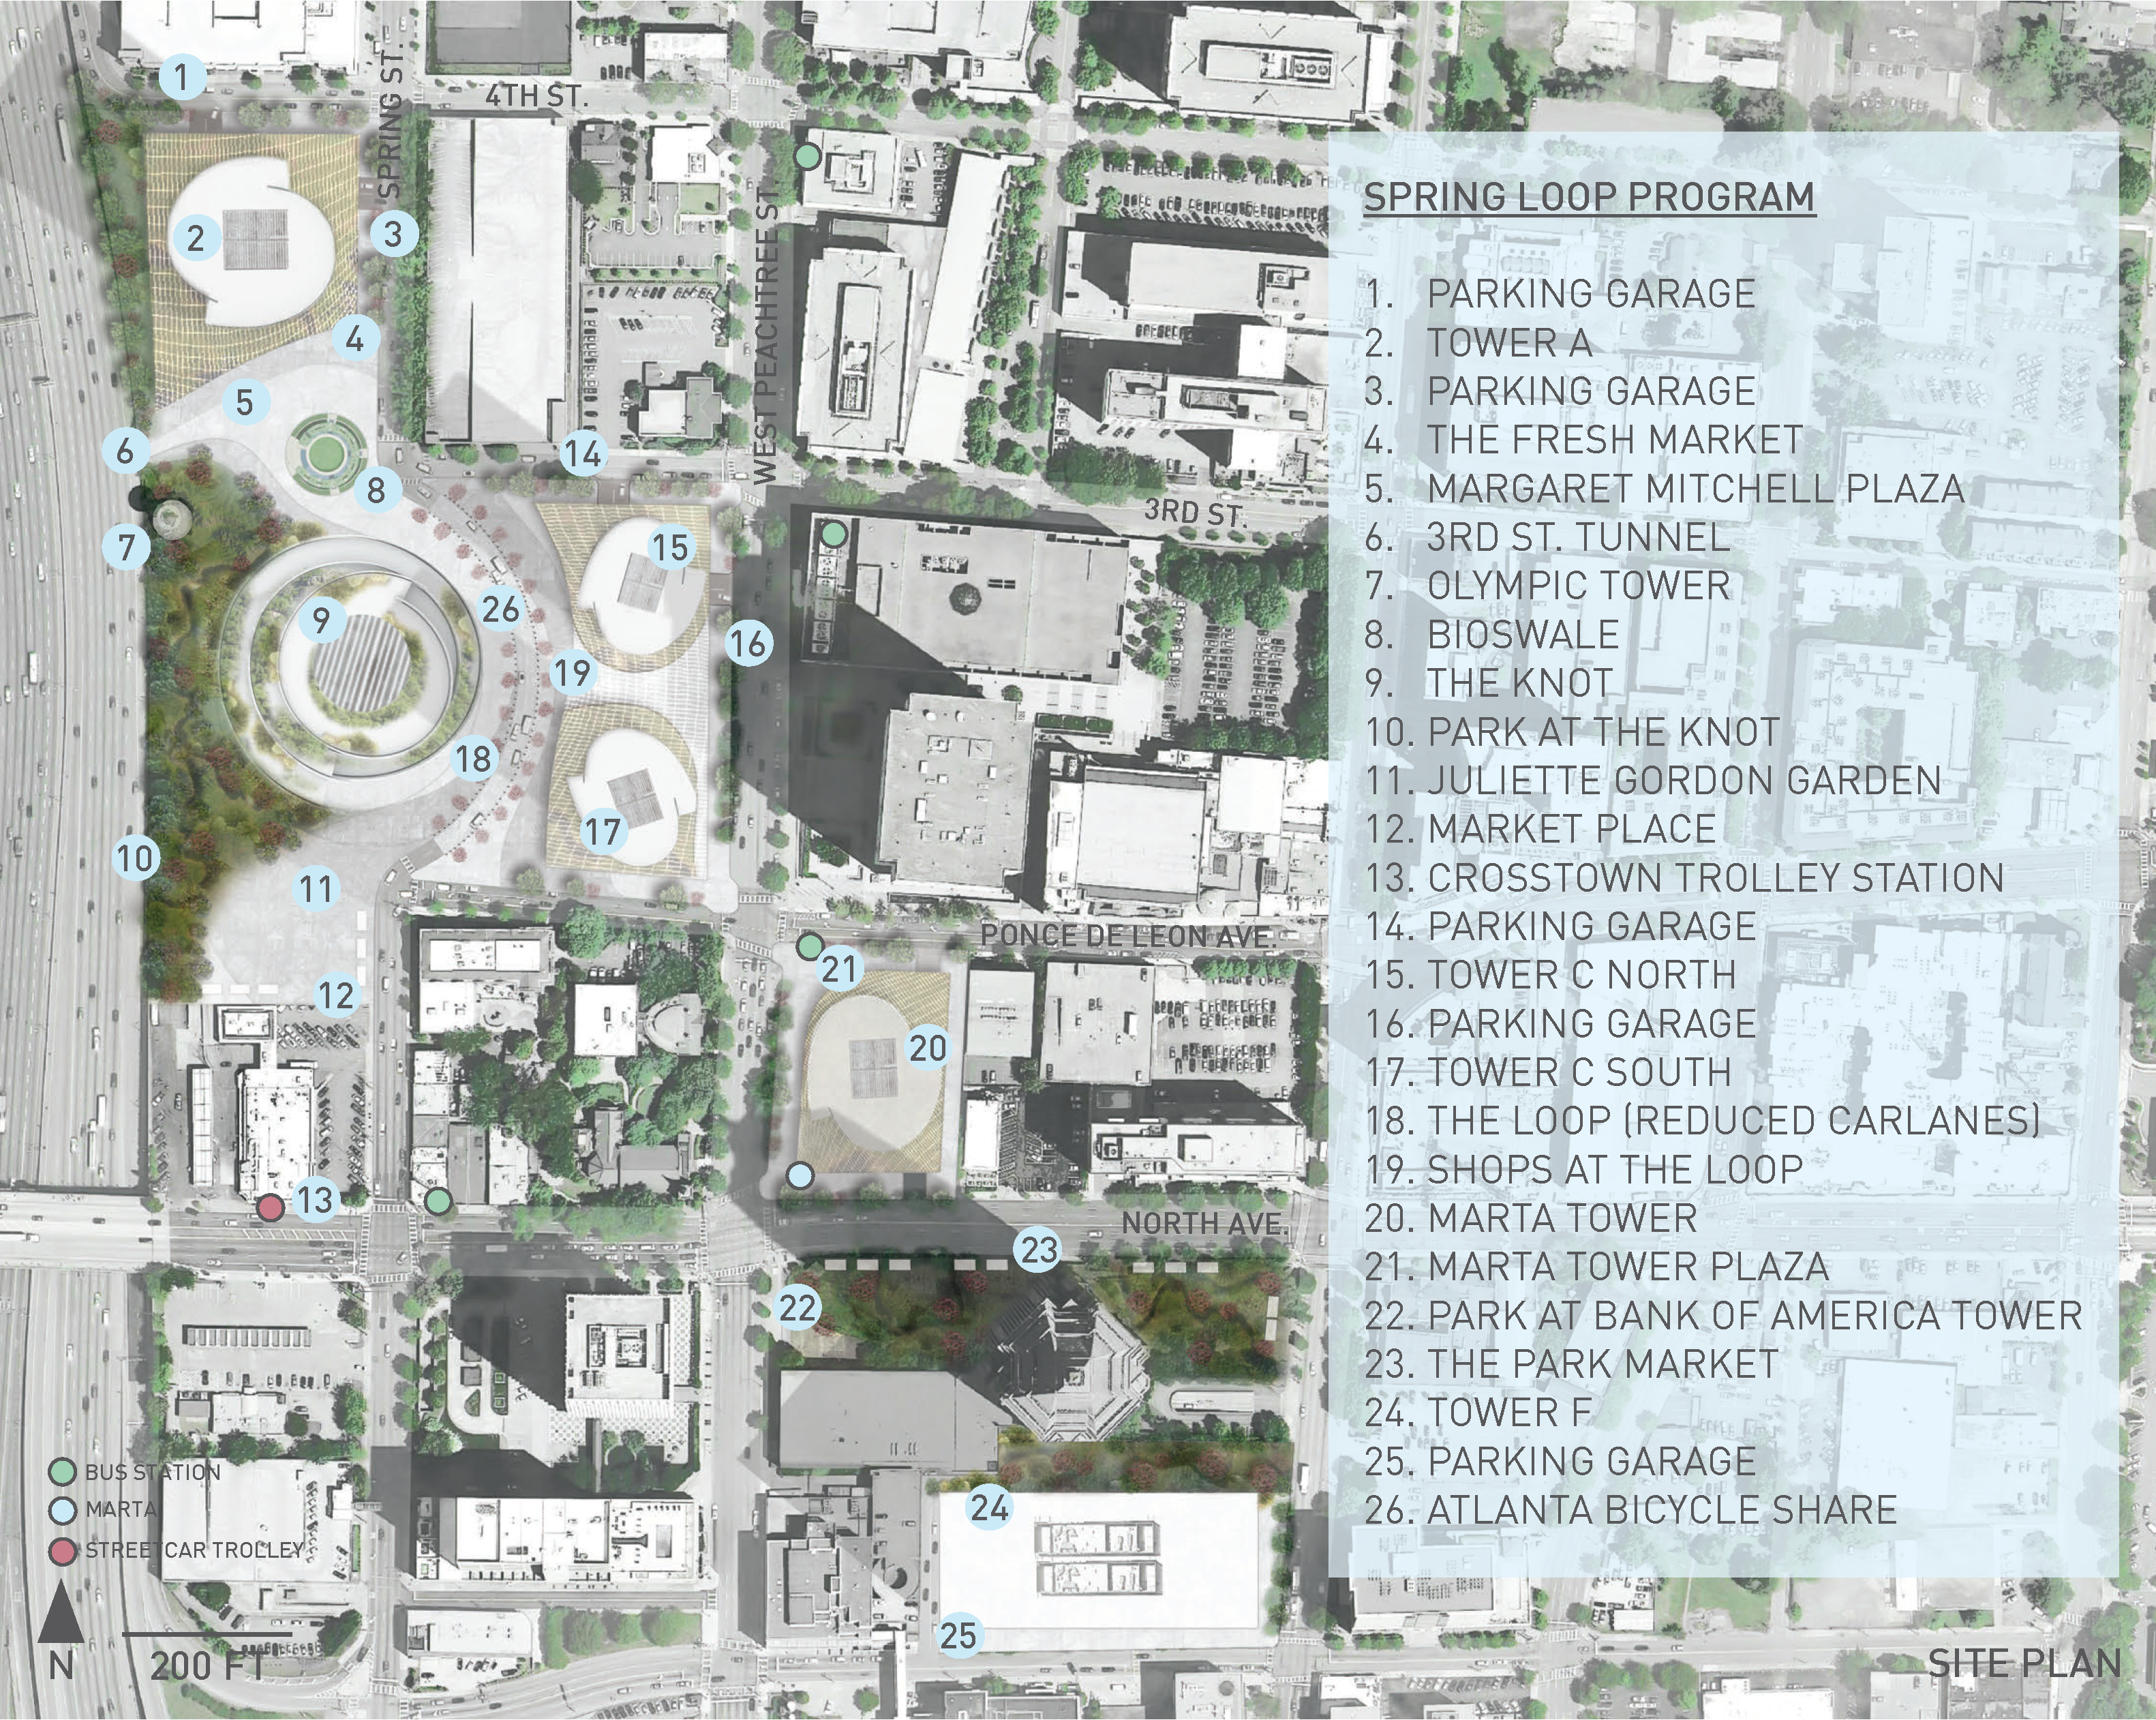 Spring City site plan